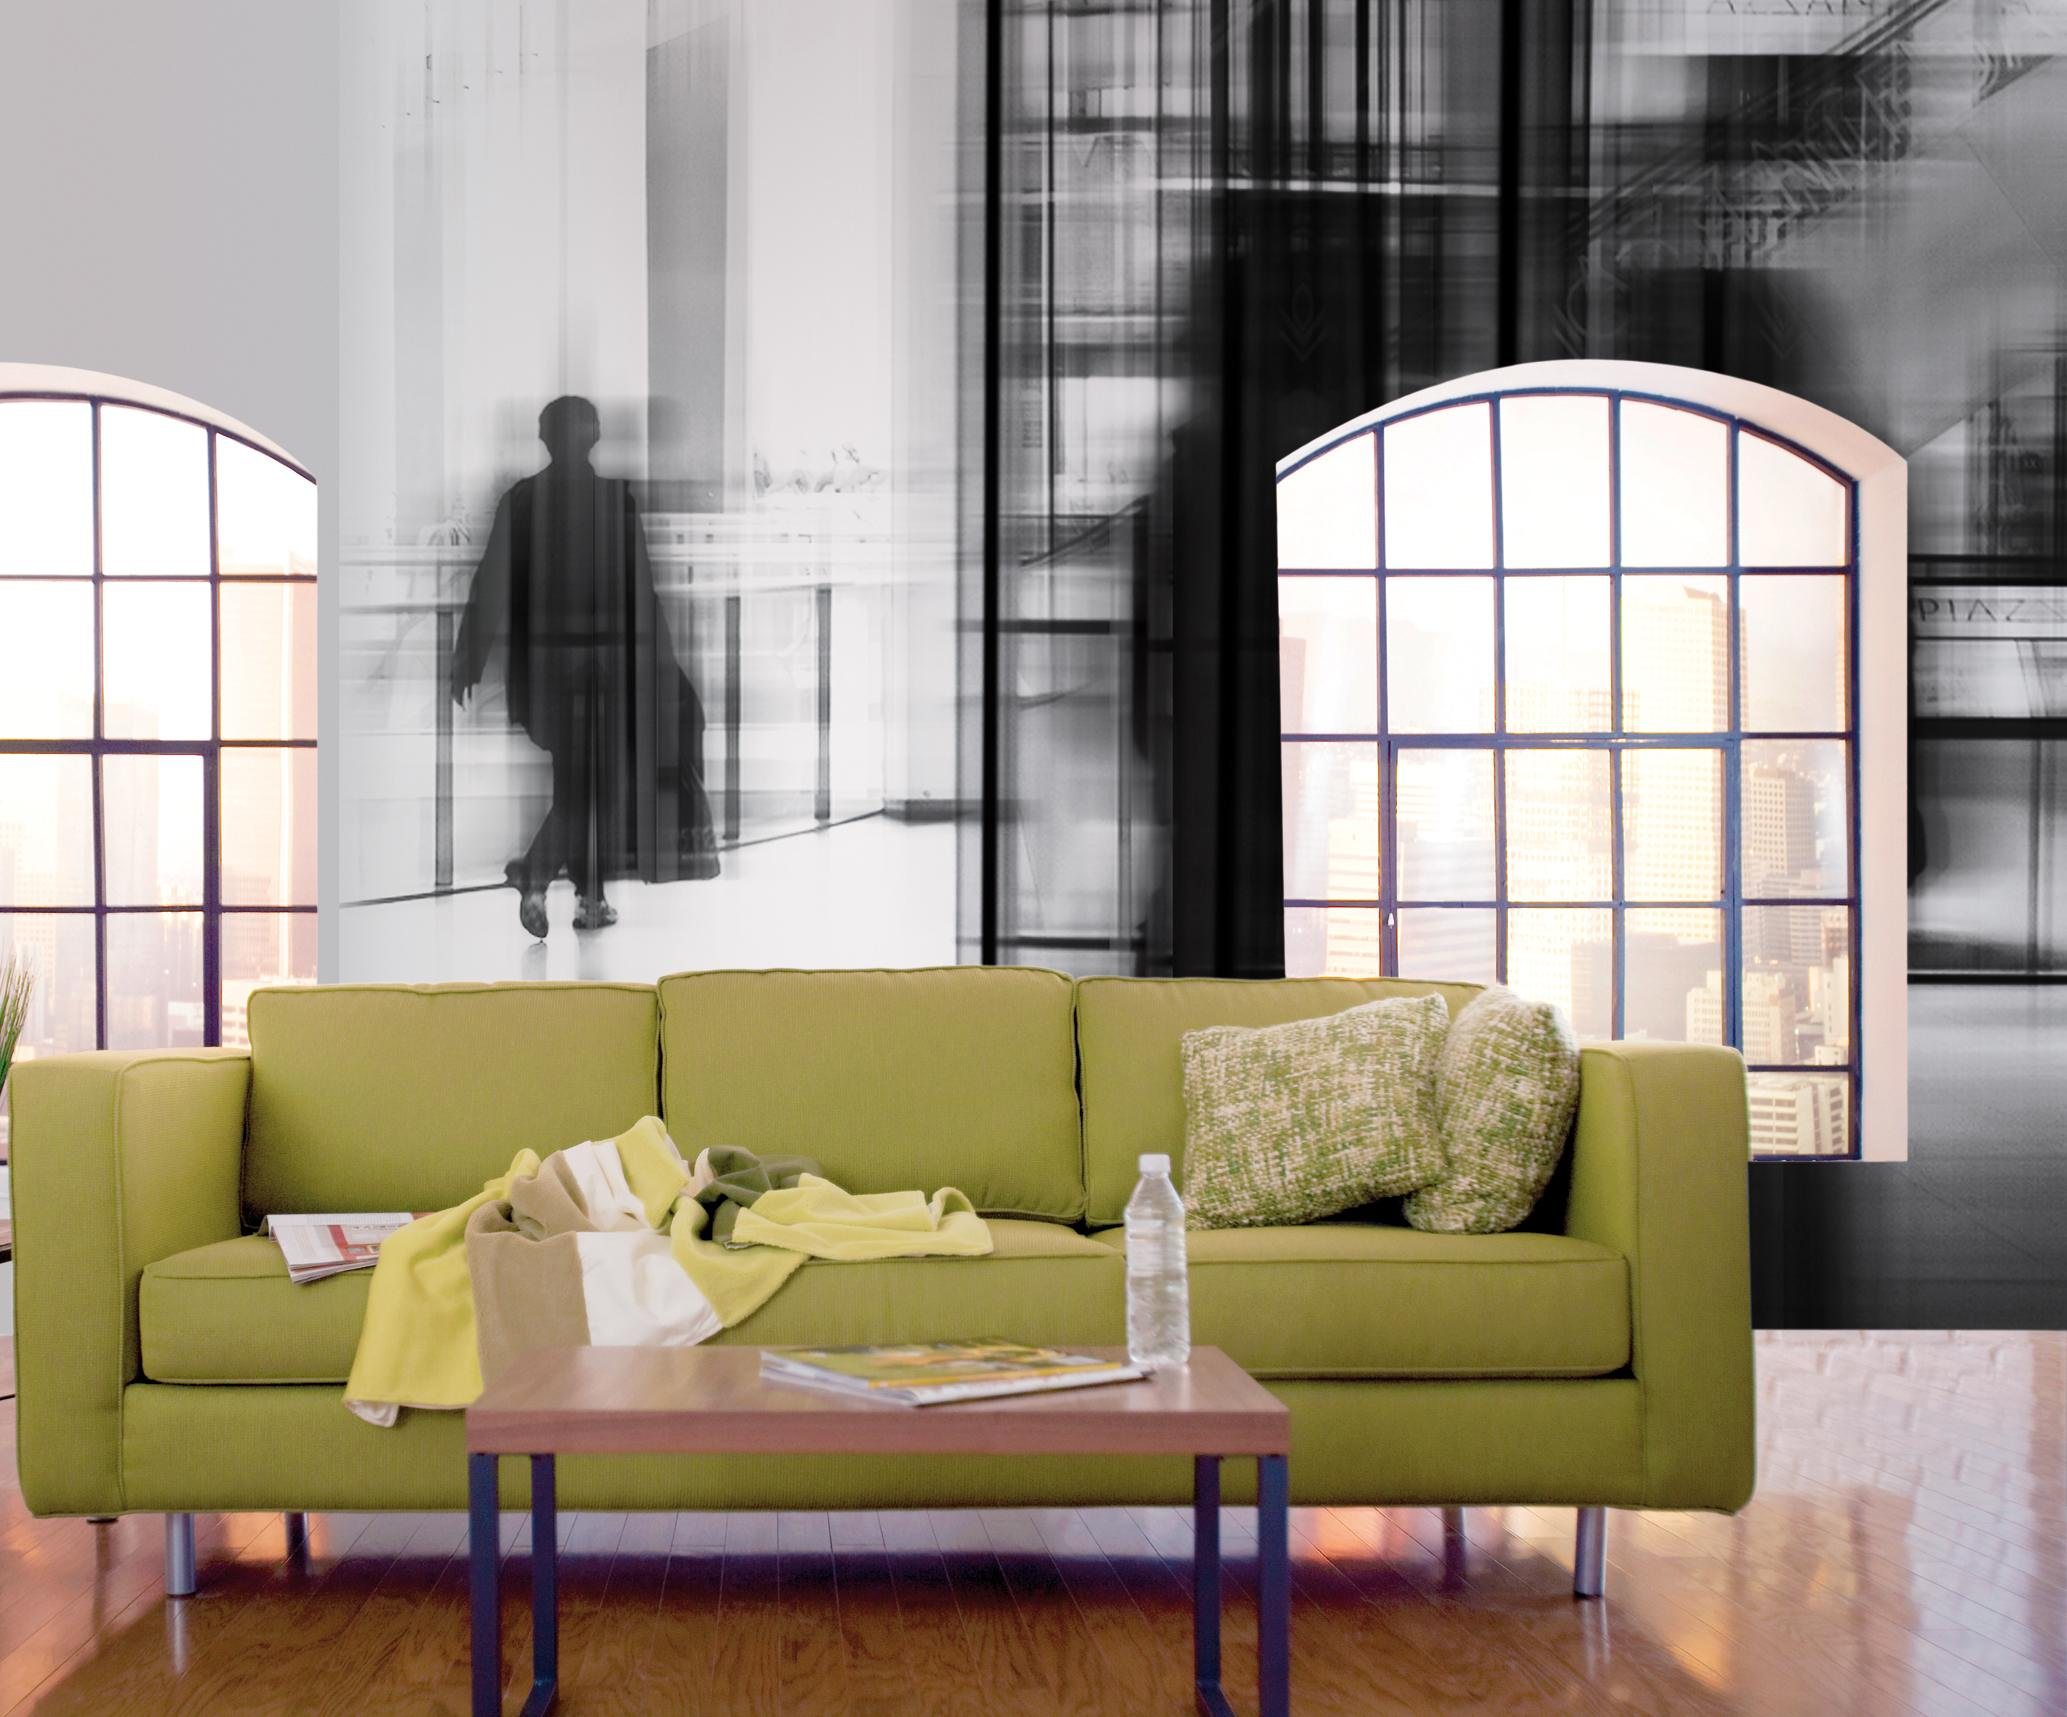 1001Glance Linea Jwall passengers Jannelli&Volpi Empty Apartment --- Image by © Royalty-Free/Corbis